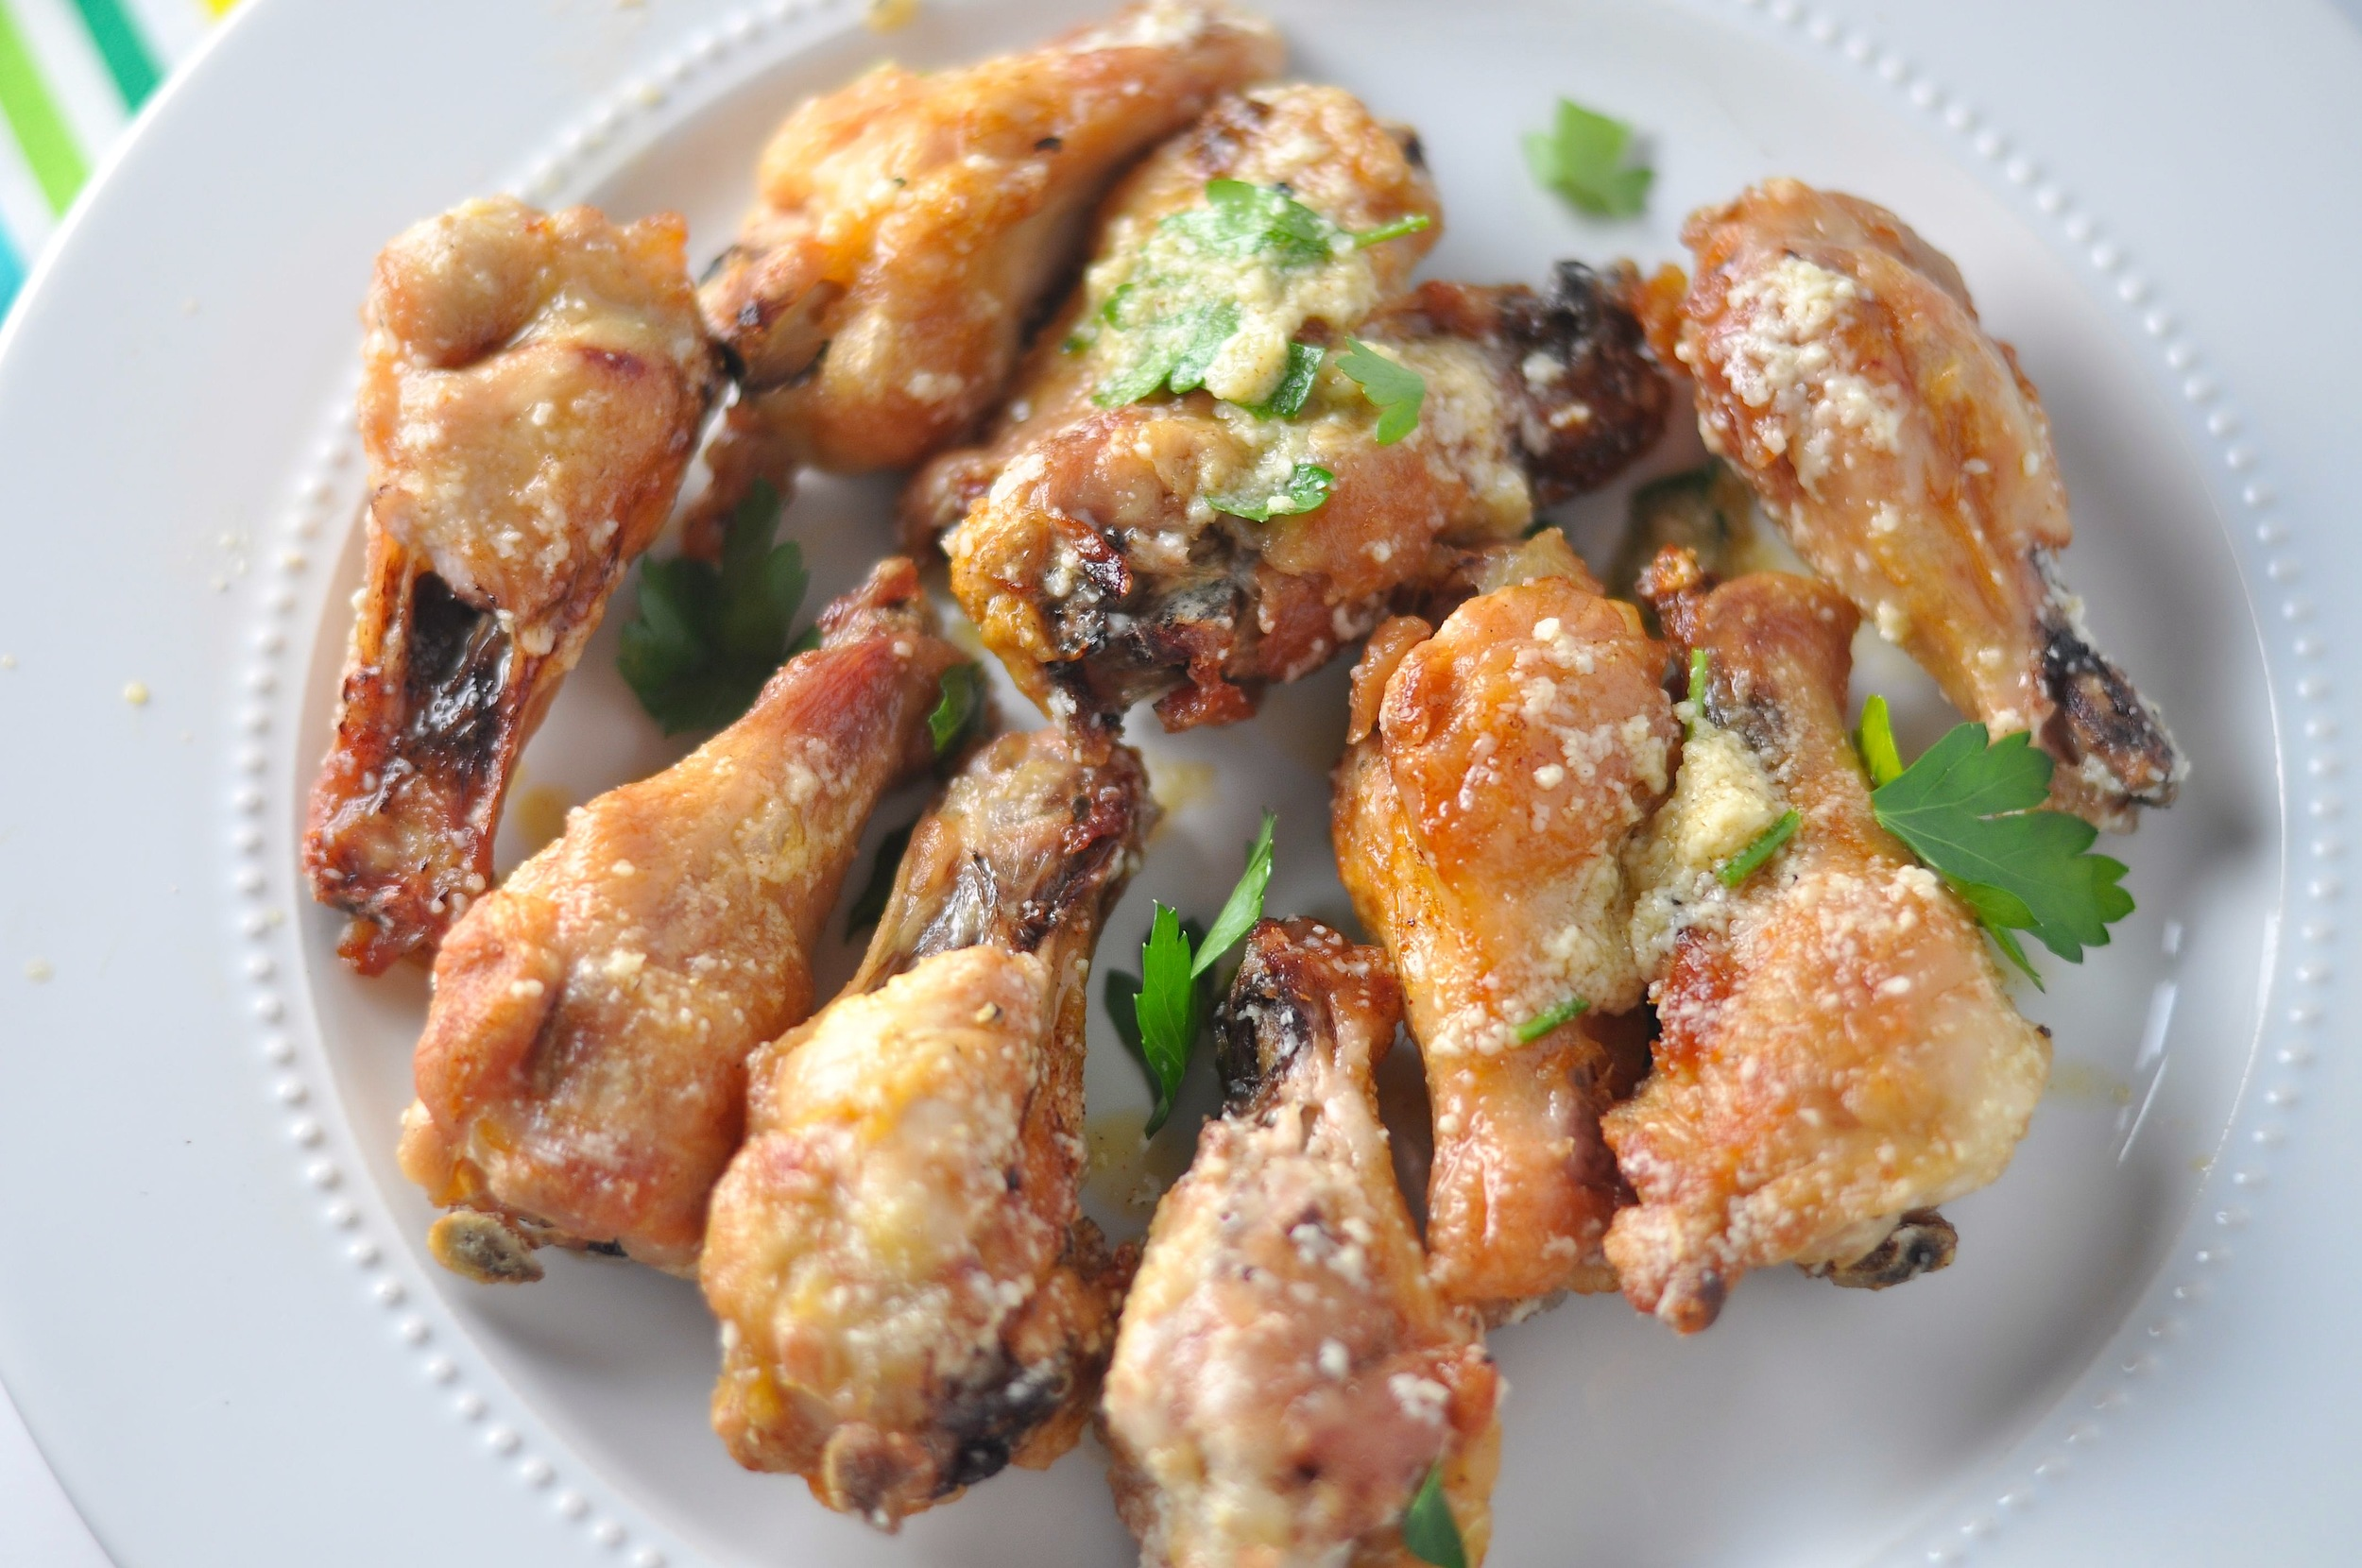 garlic cheese wings